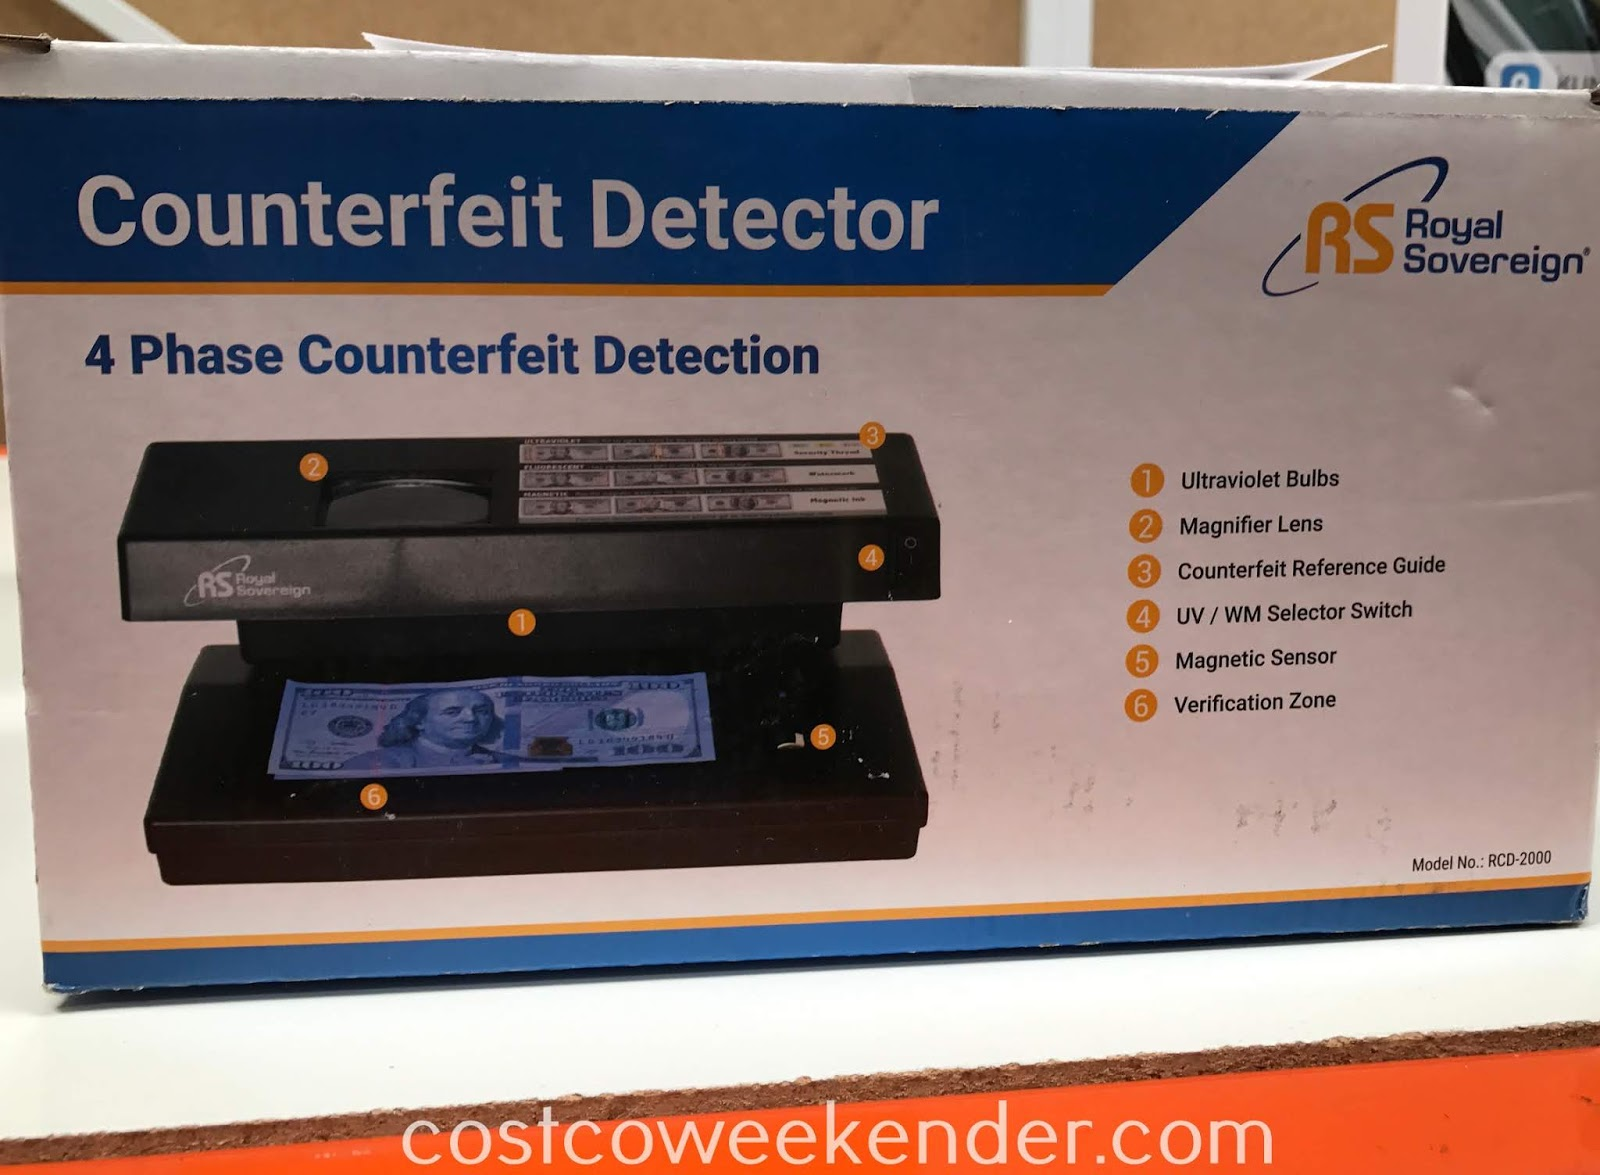 Costco 357450 - Don't get ripped off and have some peace of mind with the Royal Sovereign Counterfeit Detector